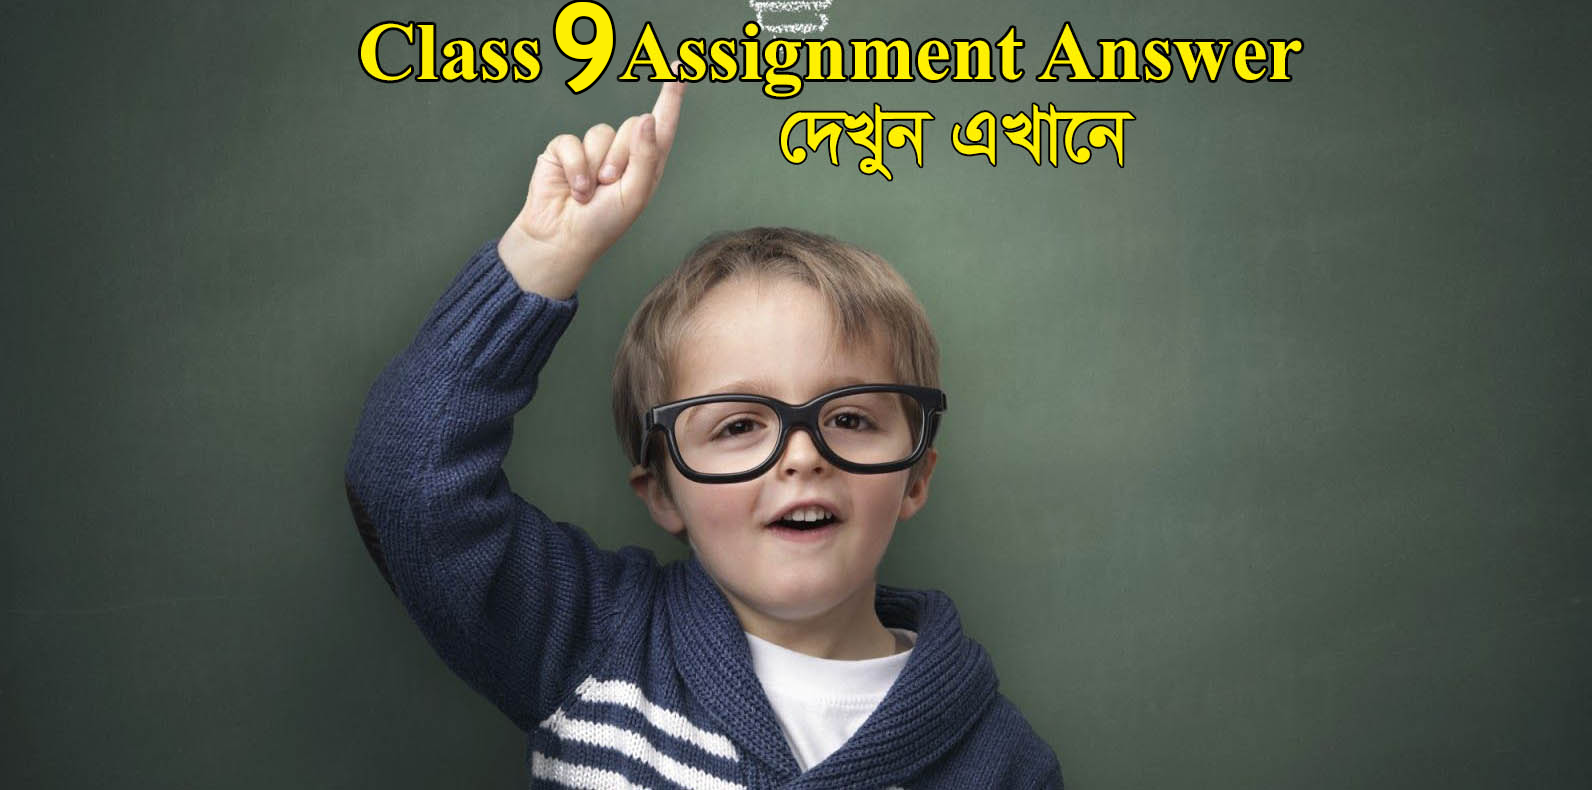 Class 9 Assignment Answer 2021